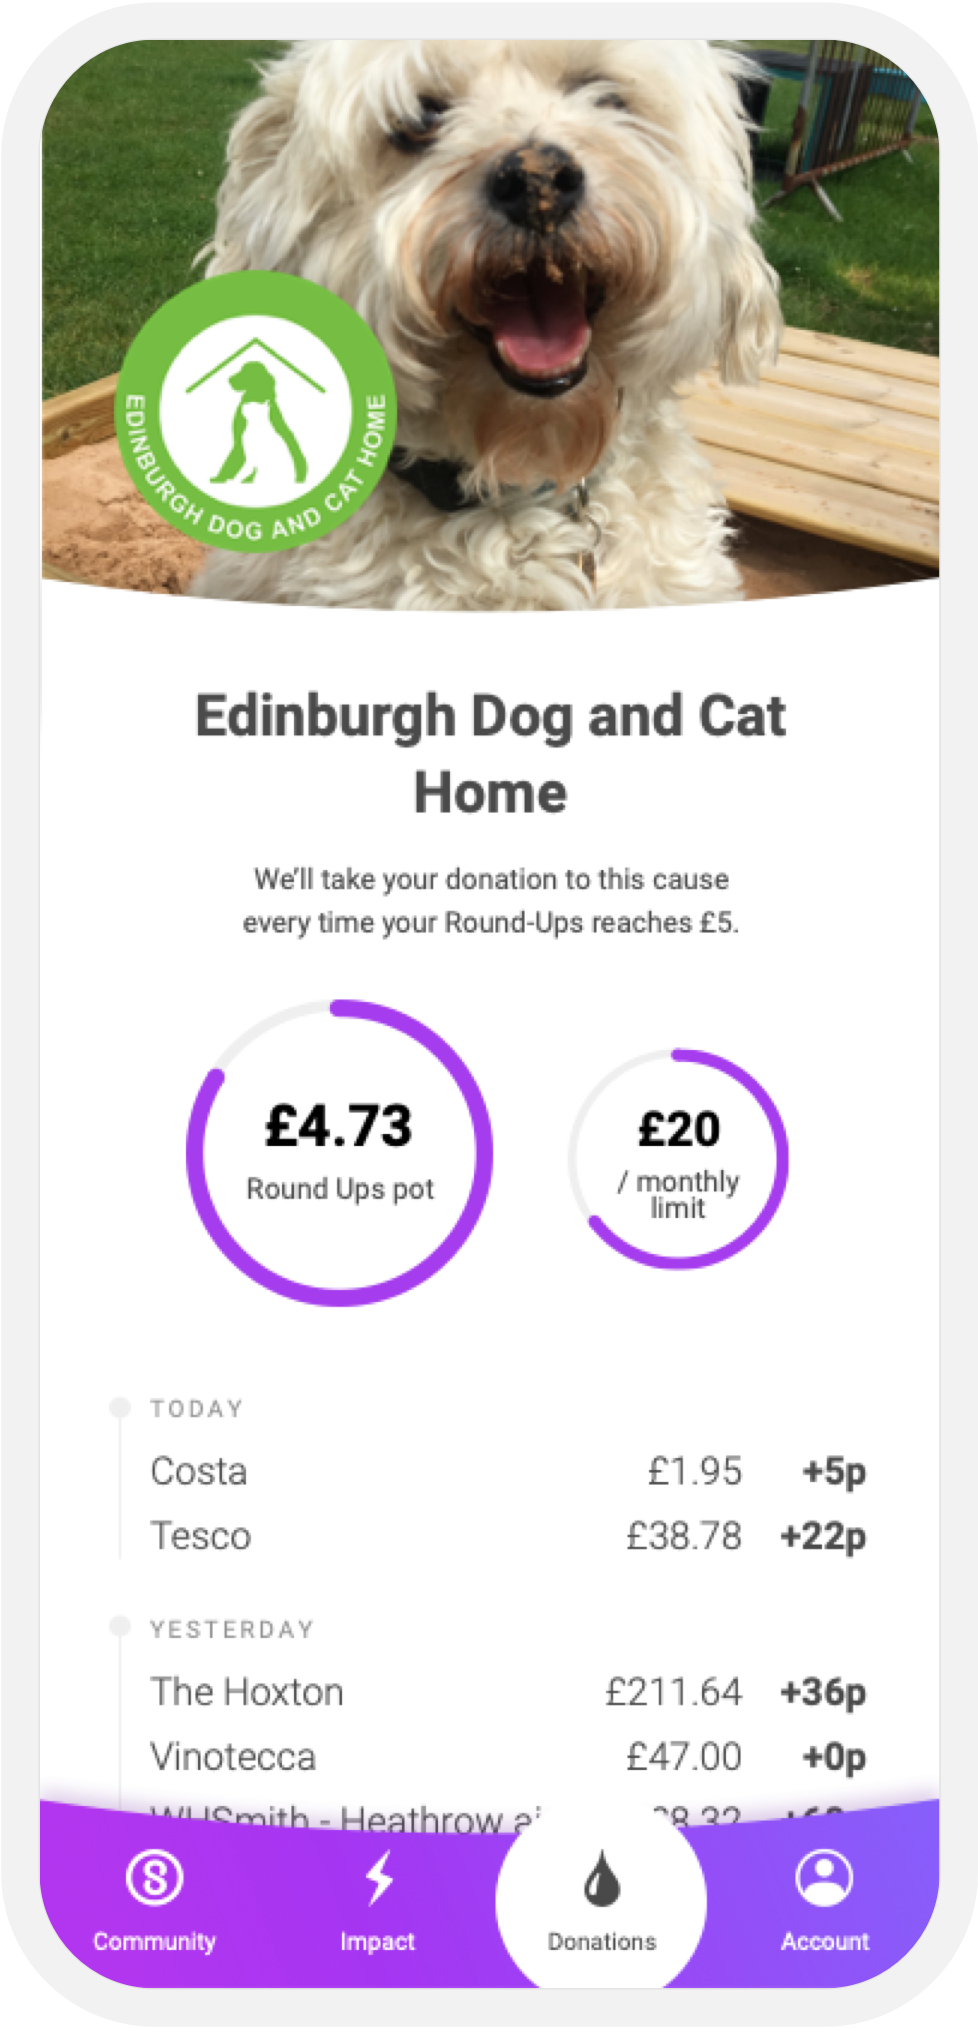 Support Edinburgh Dog and Cat Home on Sustainably